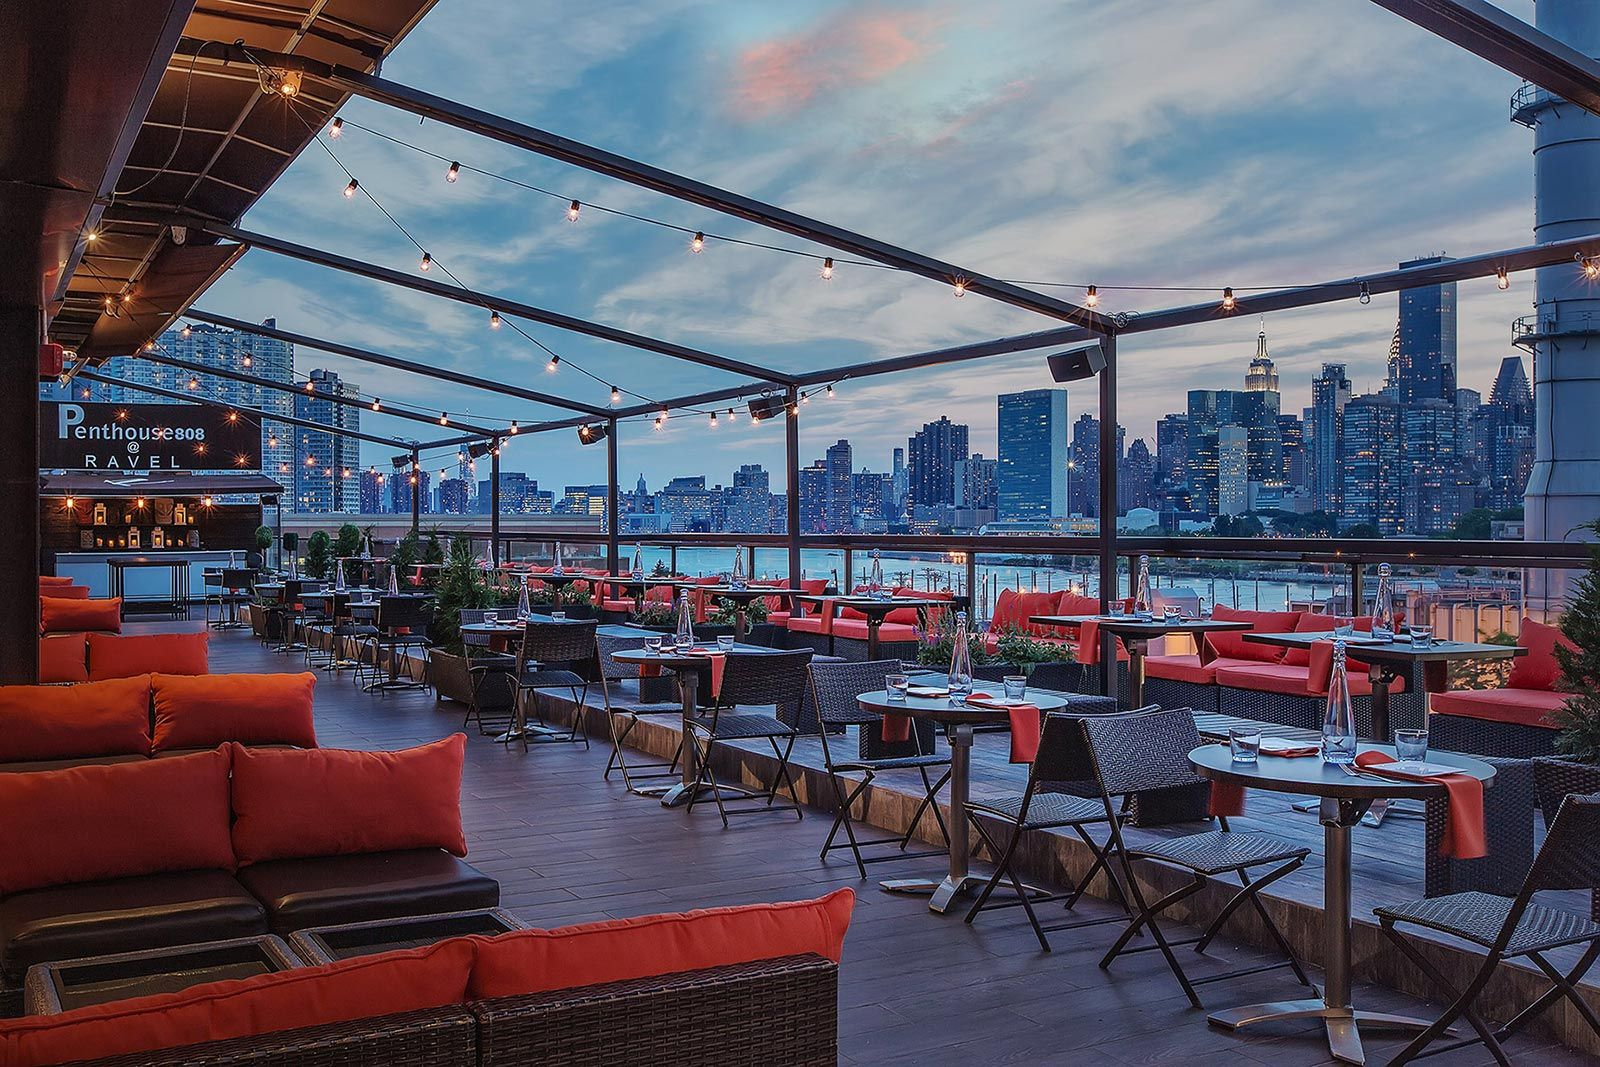 Penthouse Rooftop-Bar und Lounge in Queens!